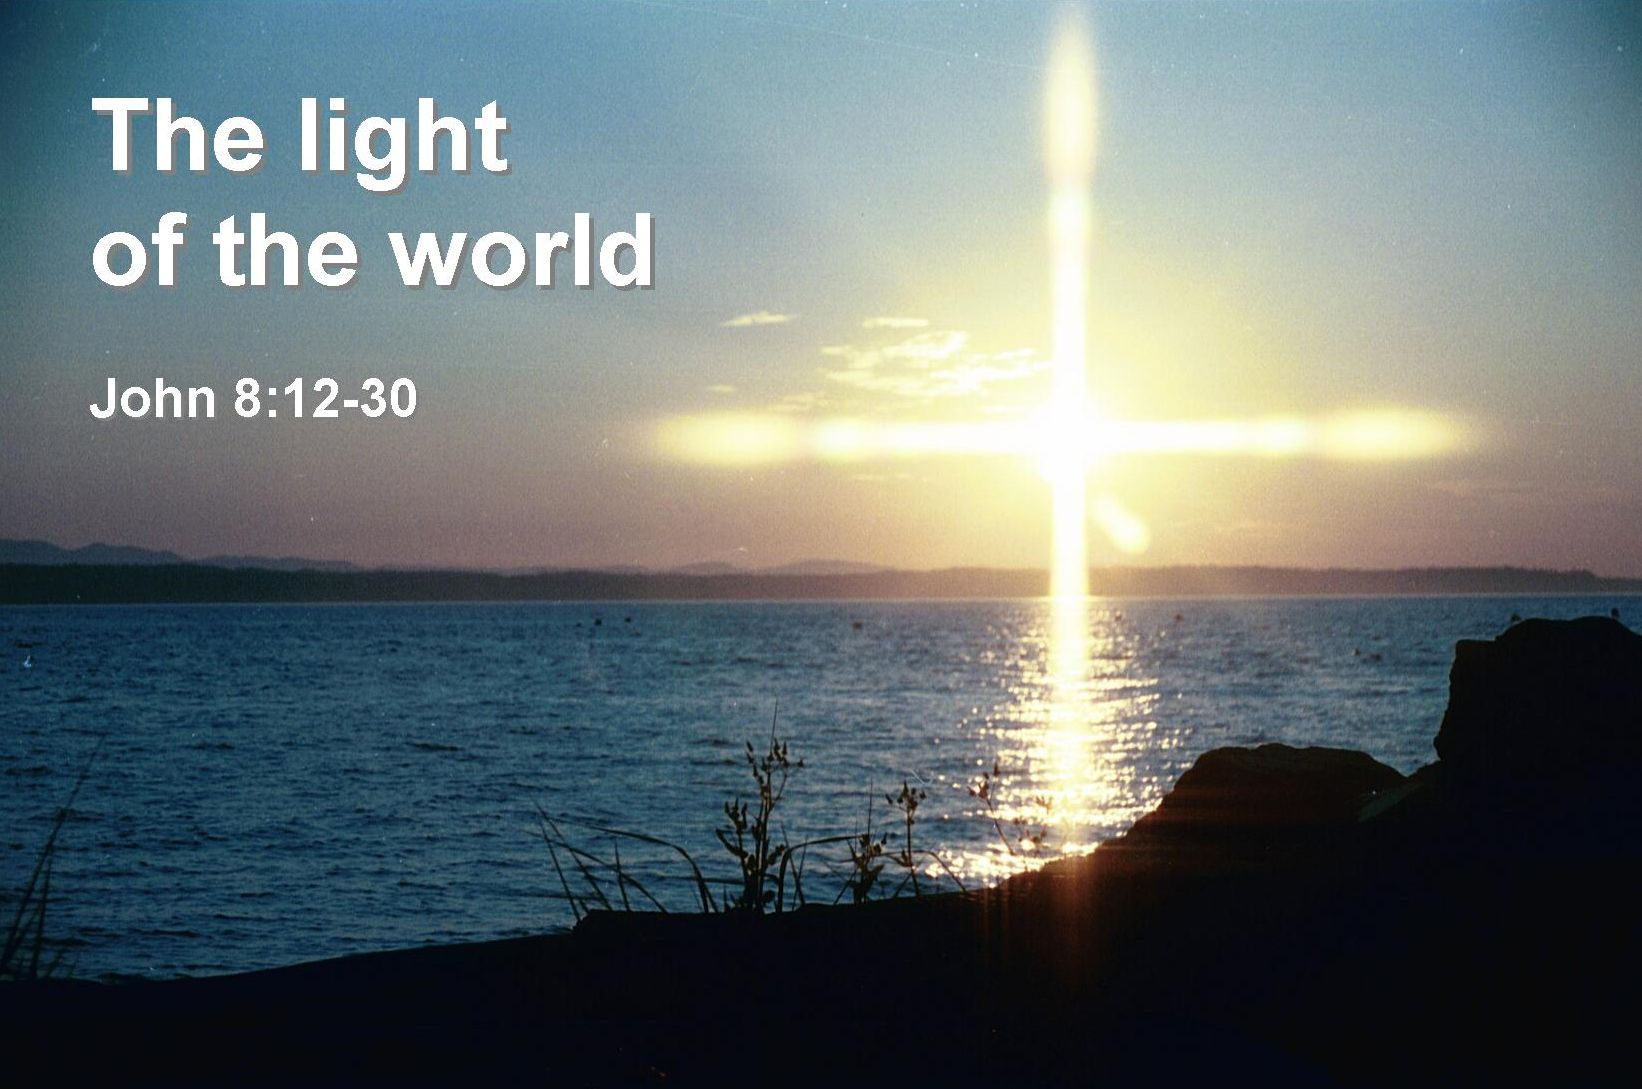 the light of the world bible quote